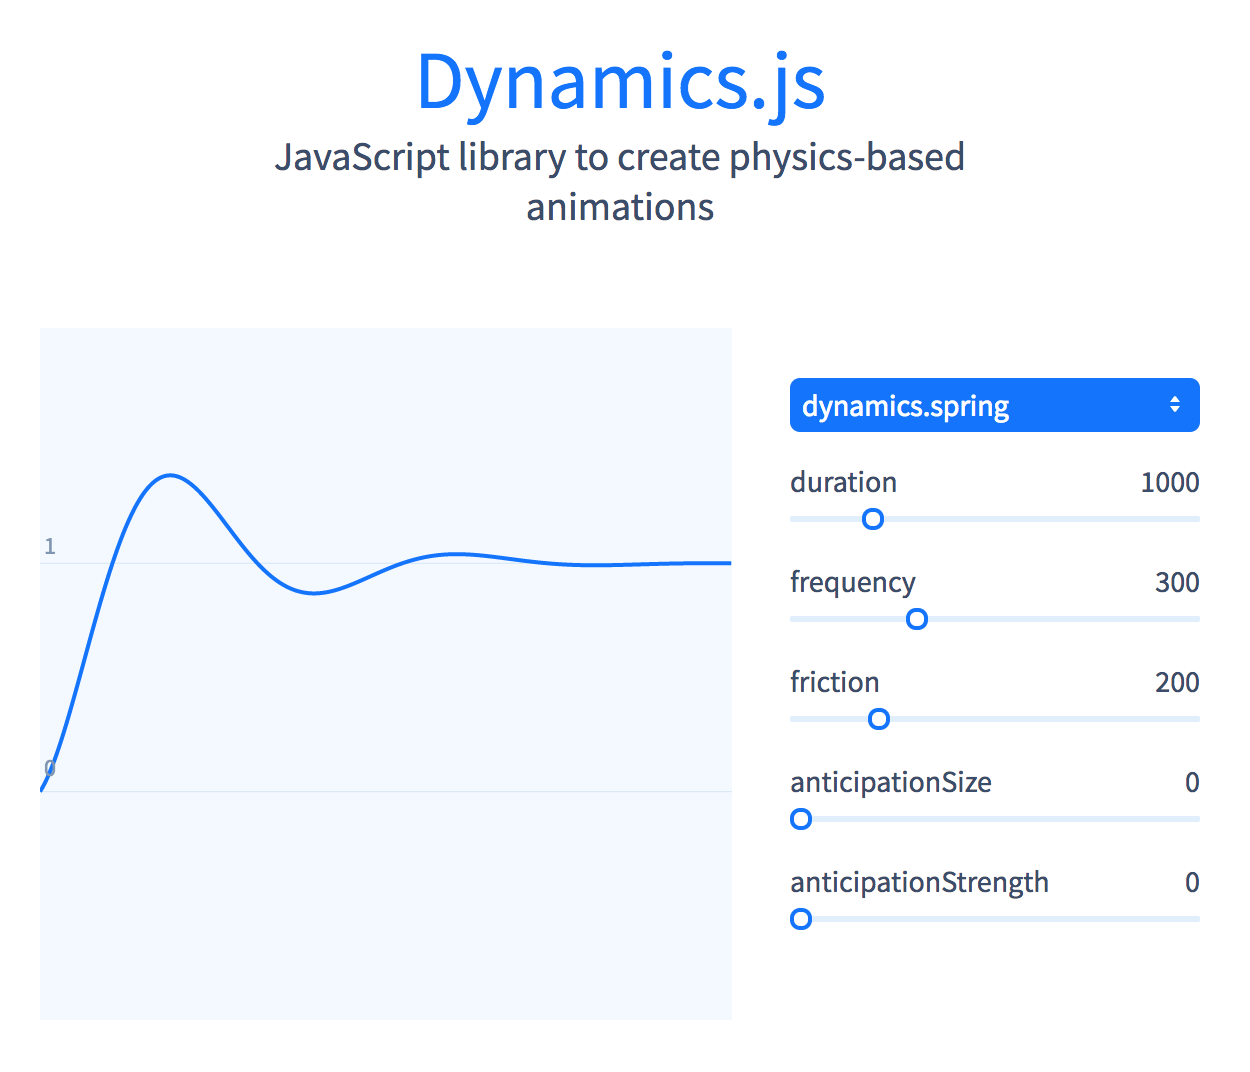 Dynamics.js website